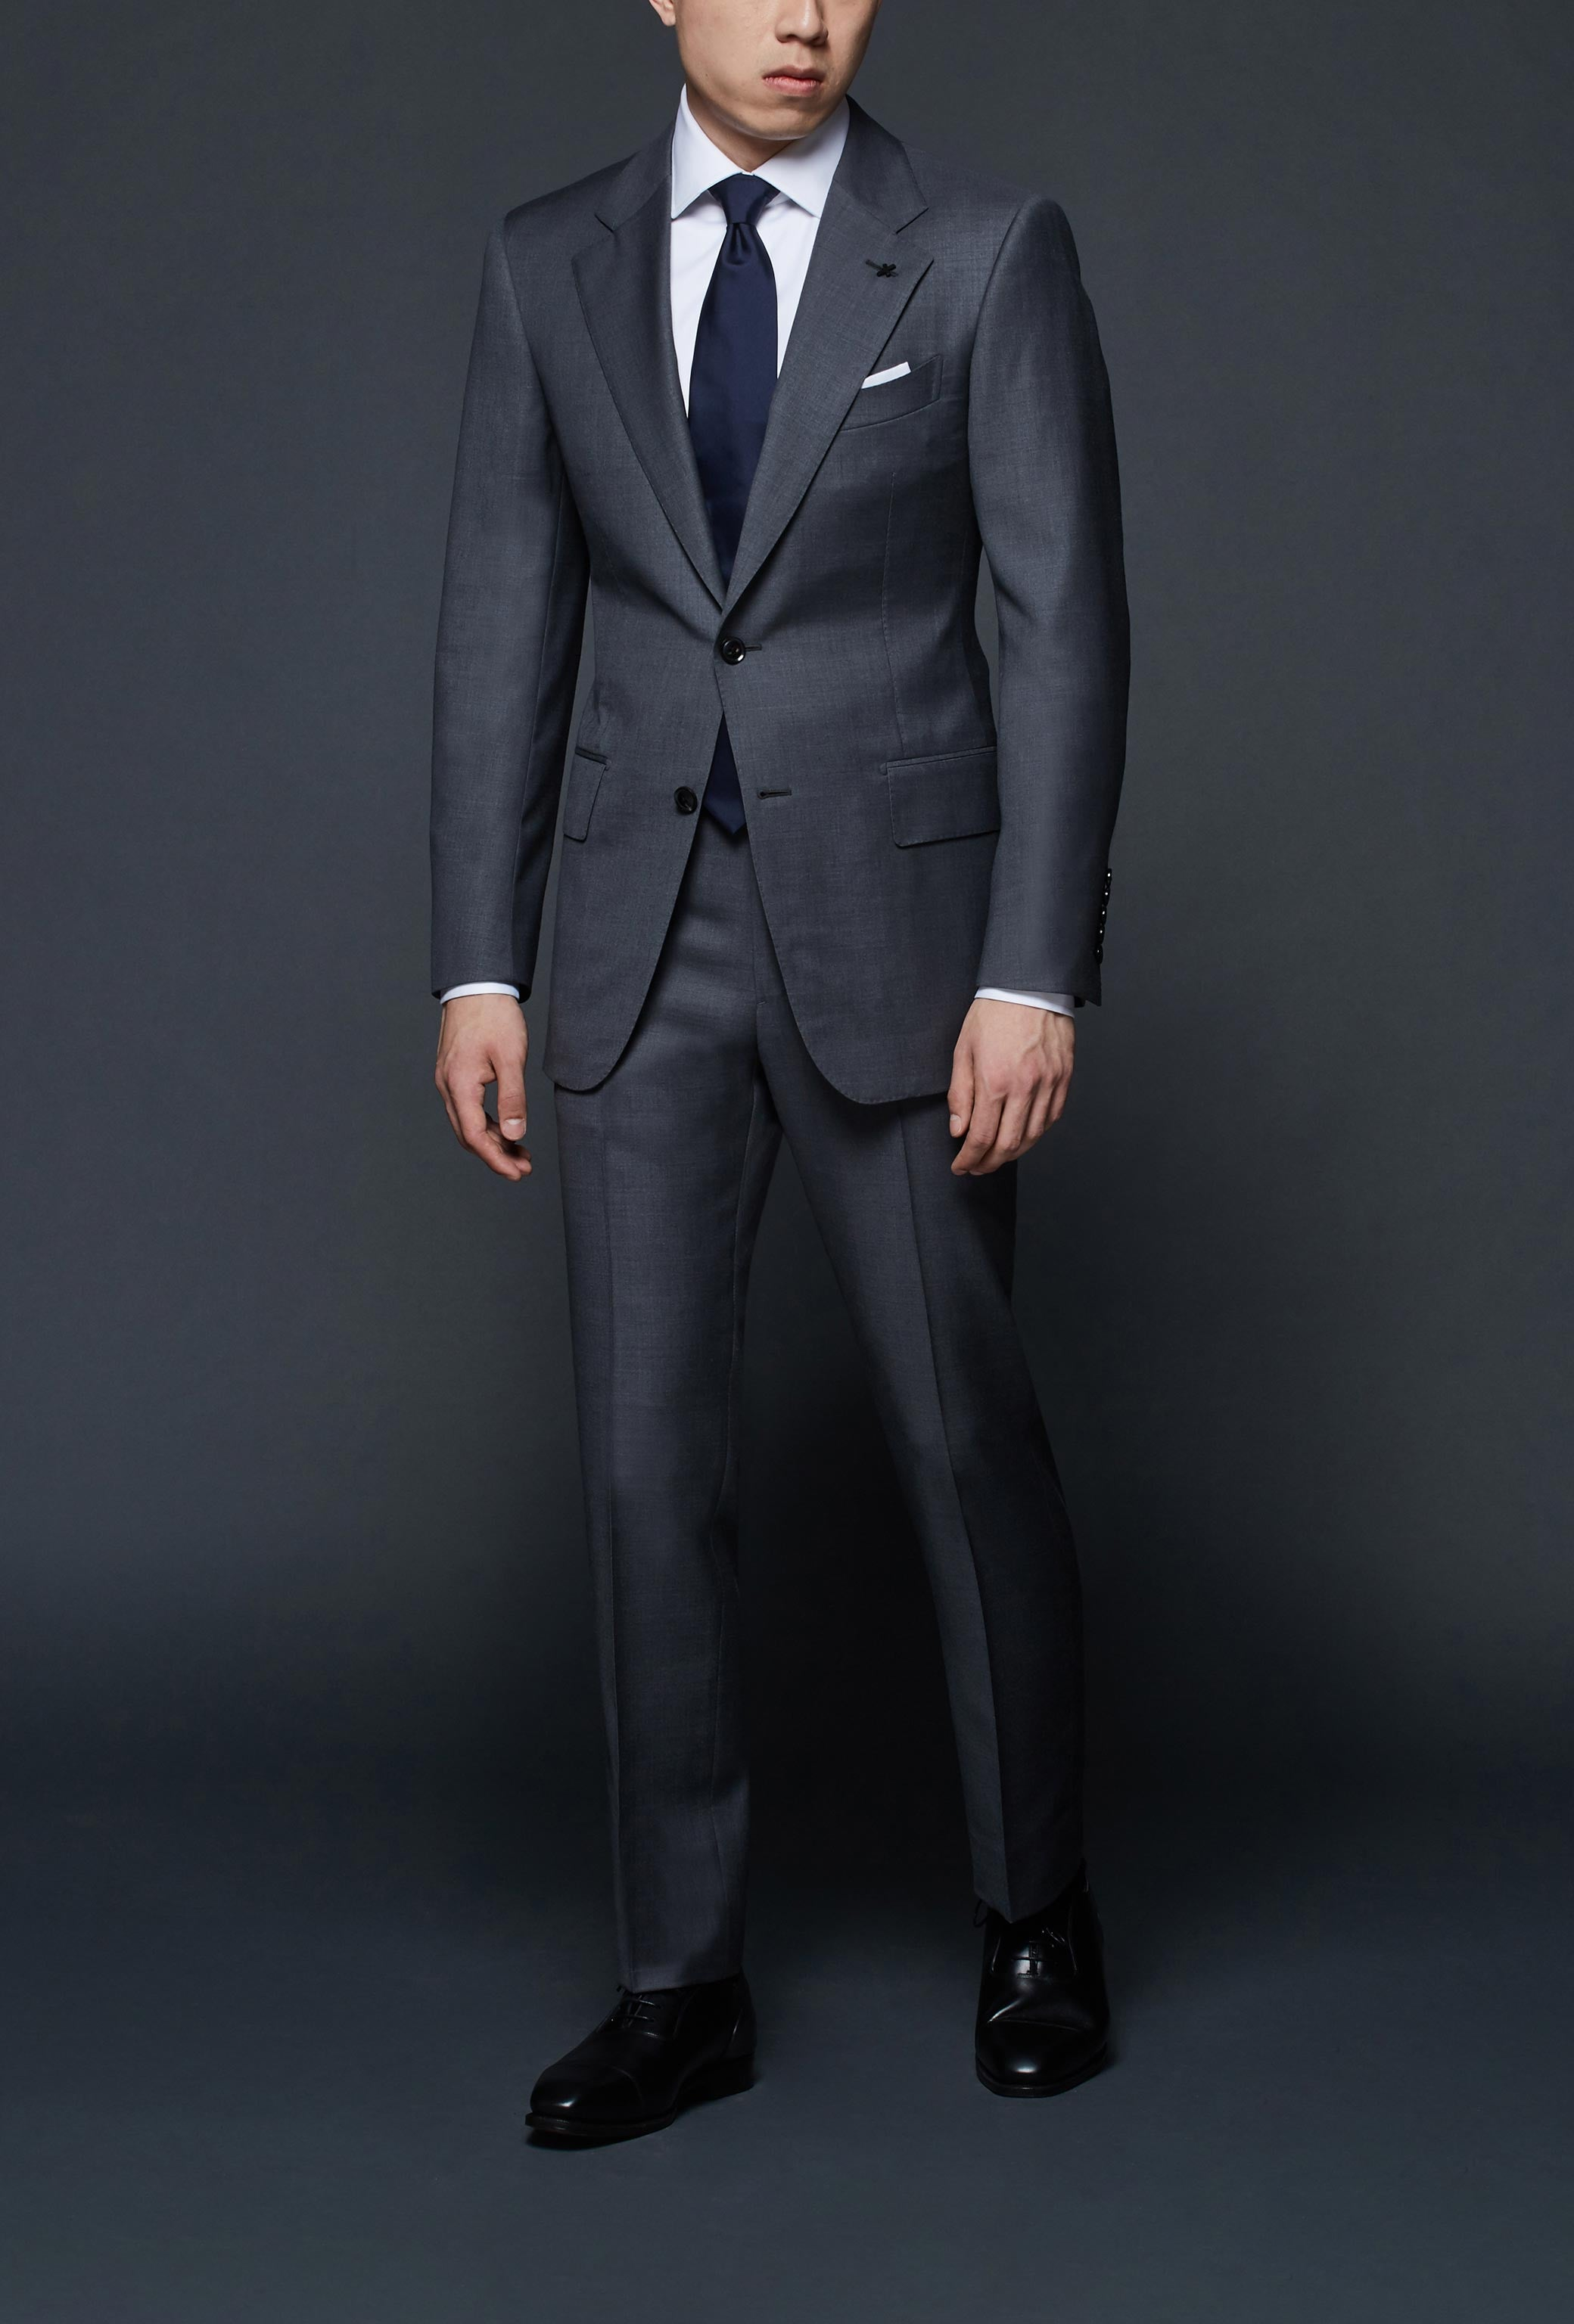 Medium Grey Notch Lapel Suit